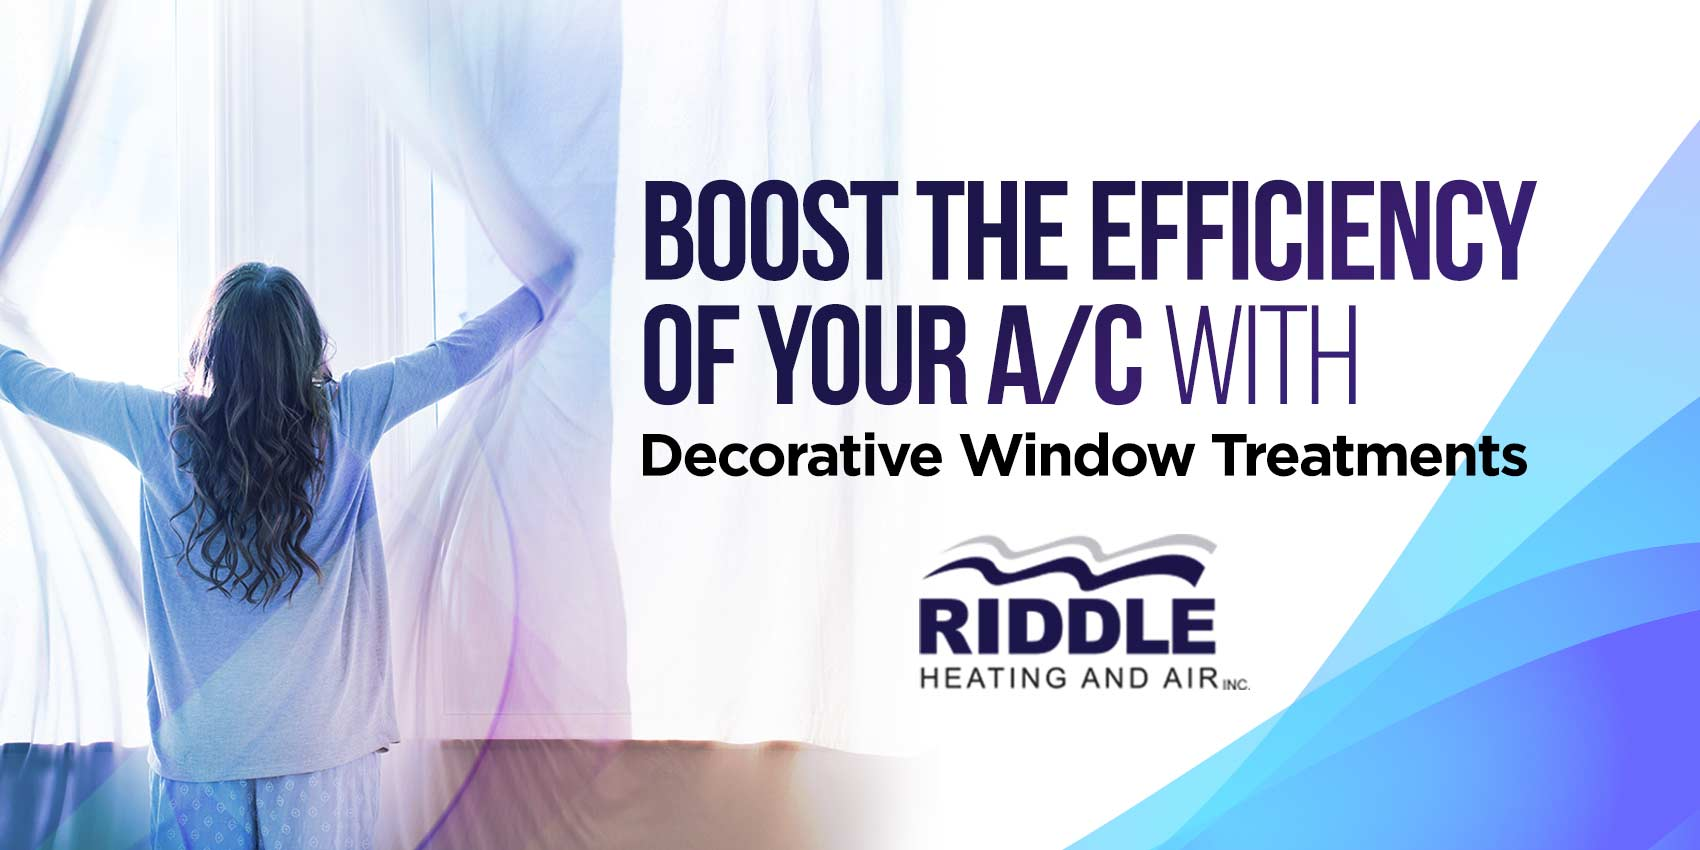 Boost the Efficiency of Your A/C with Decorative Window Treatments